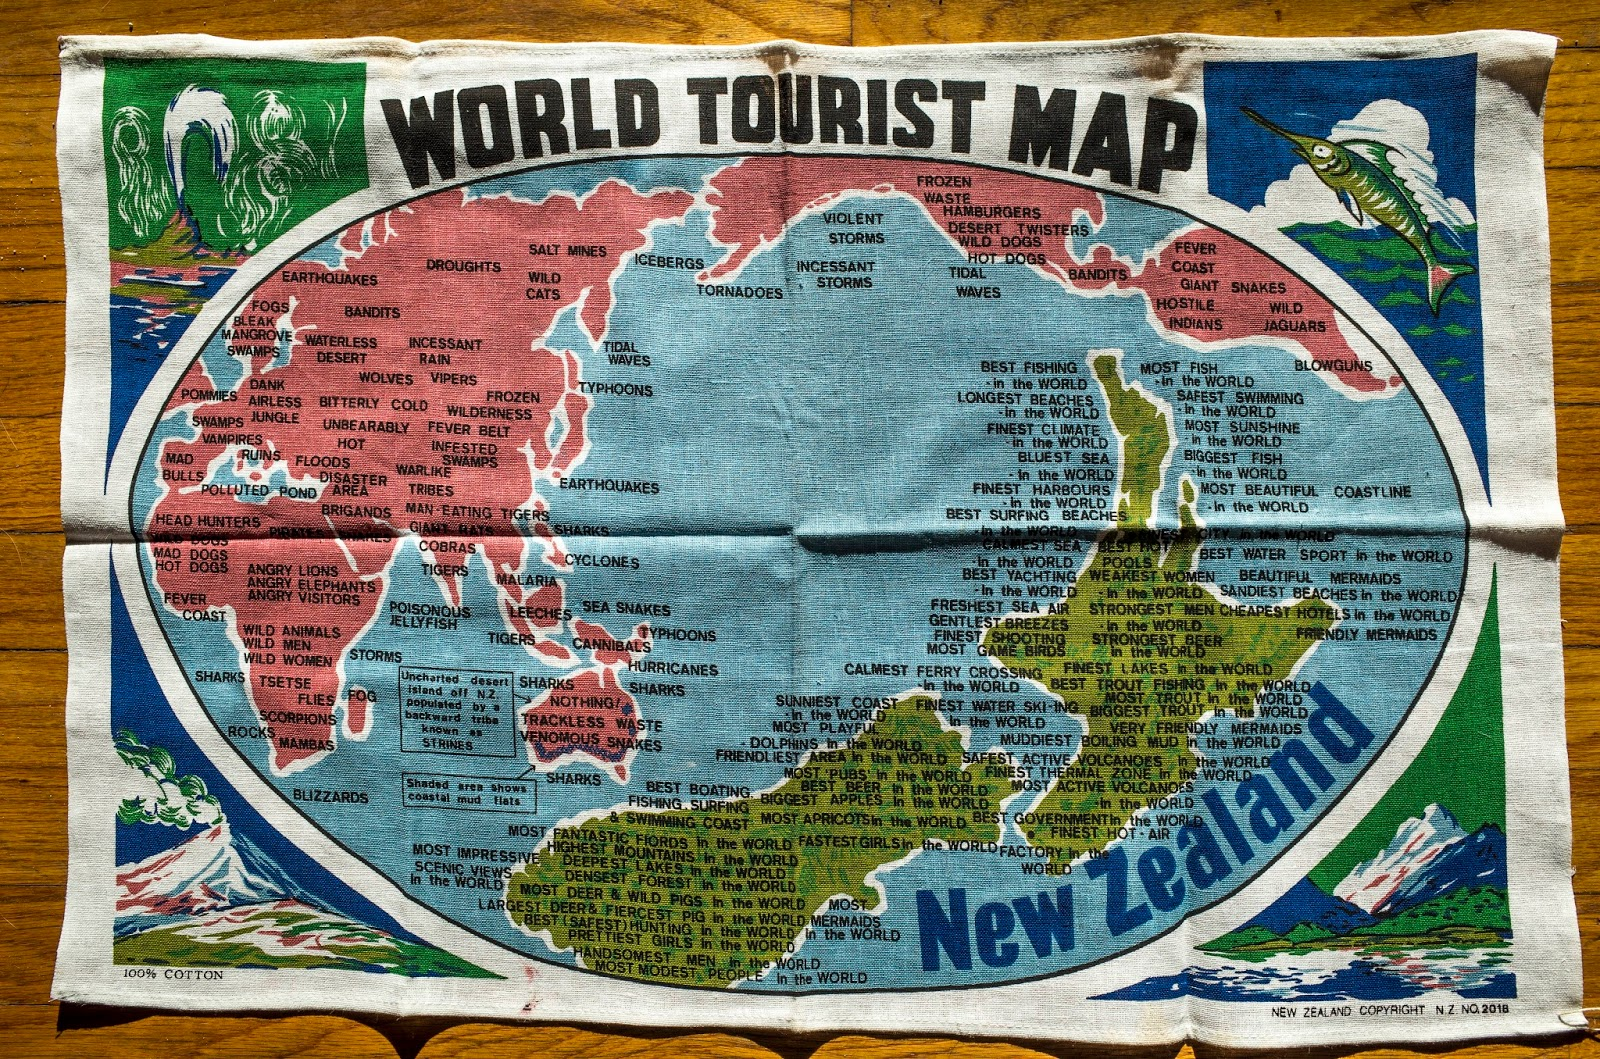 World tourism map, New Zealand's perspective